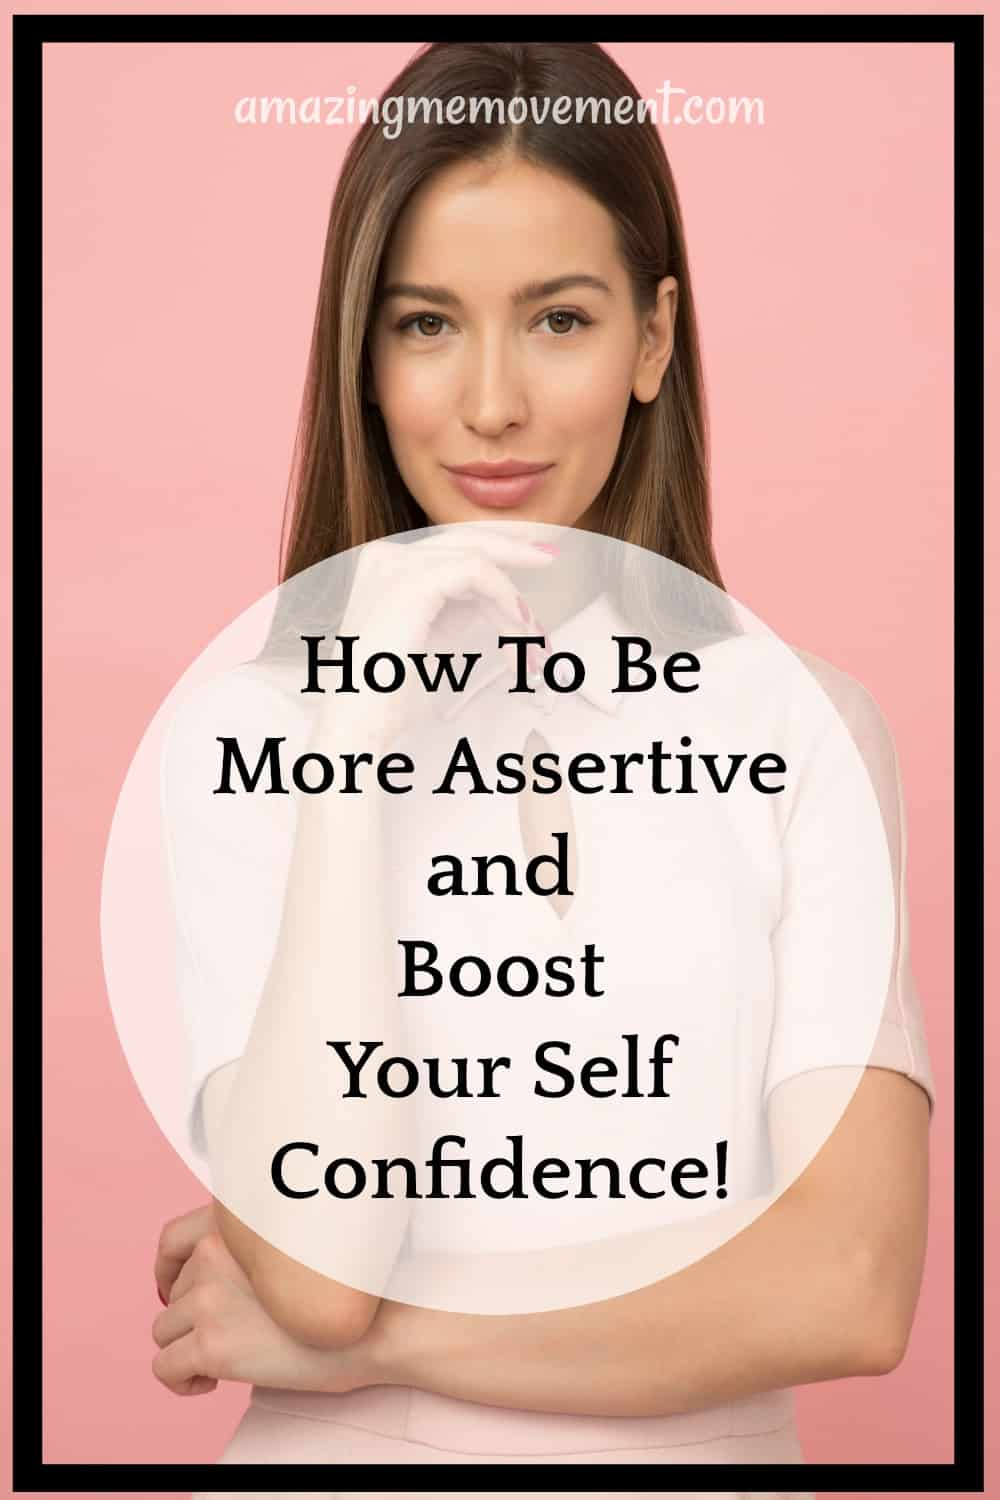 How to be more assertive and boost your self confidence